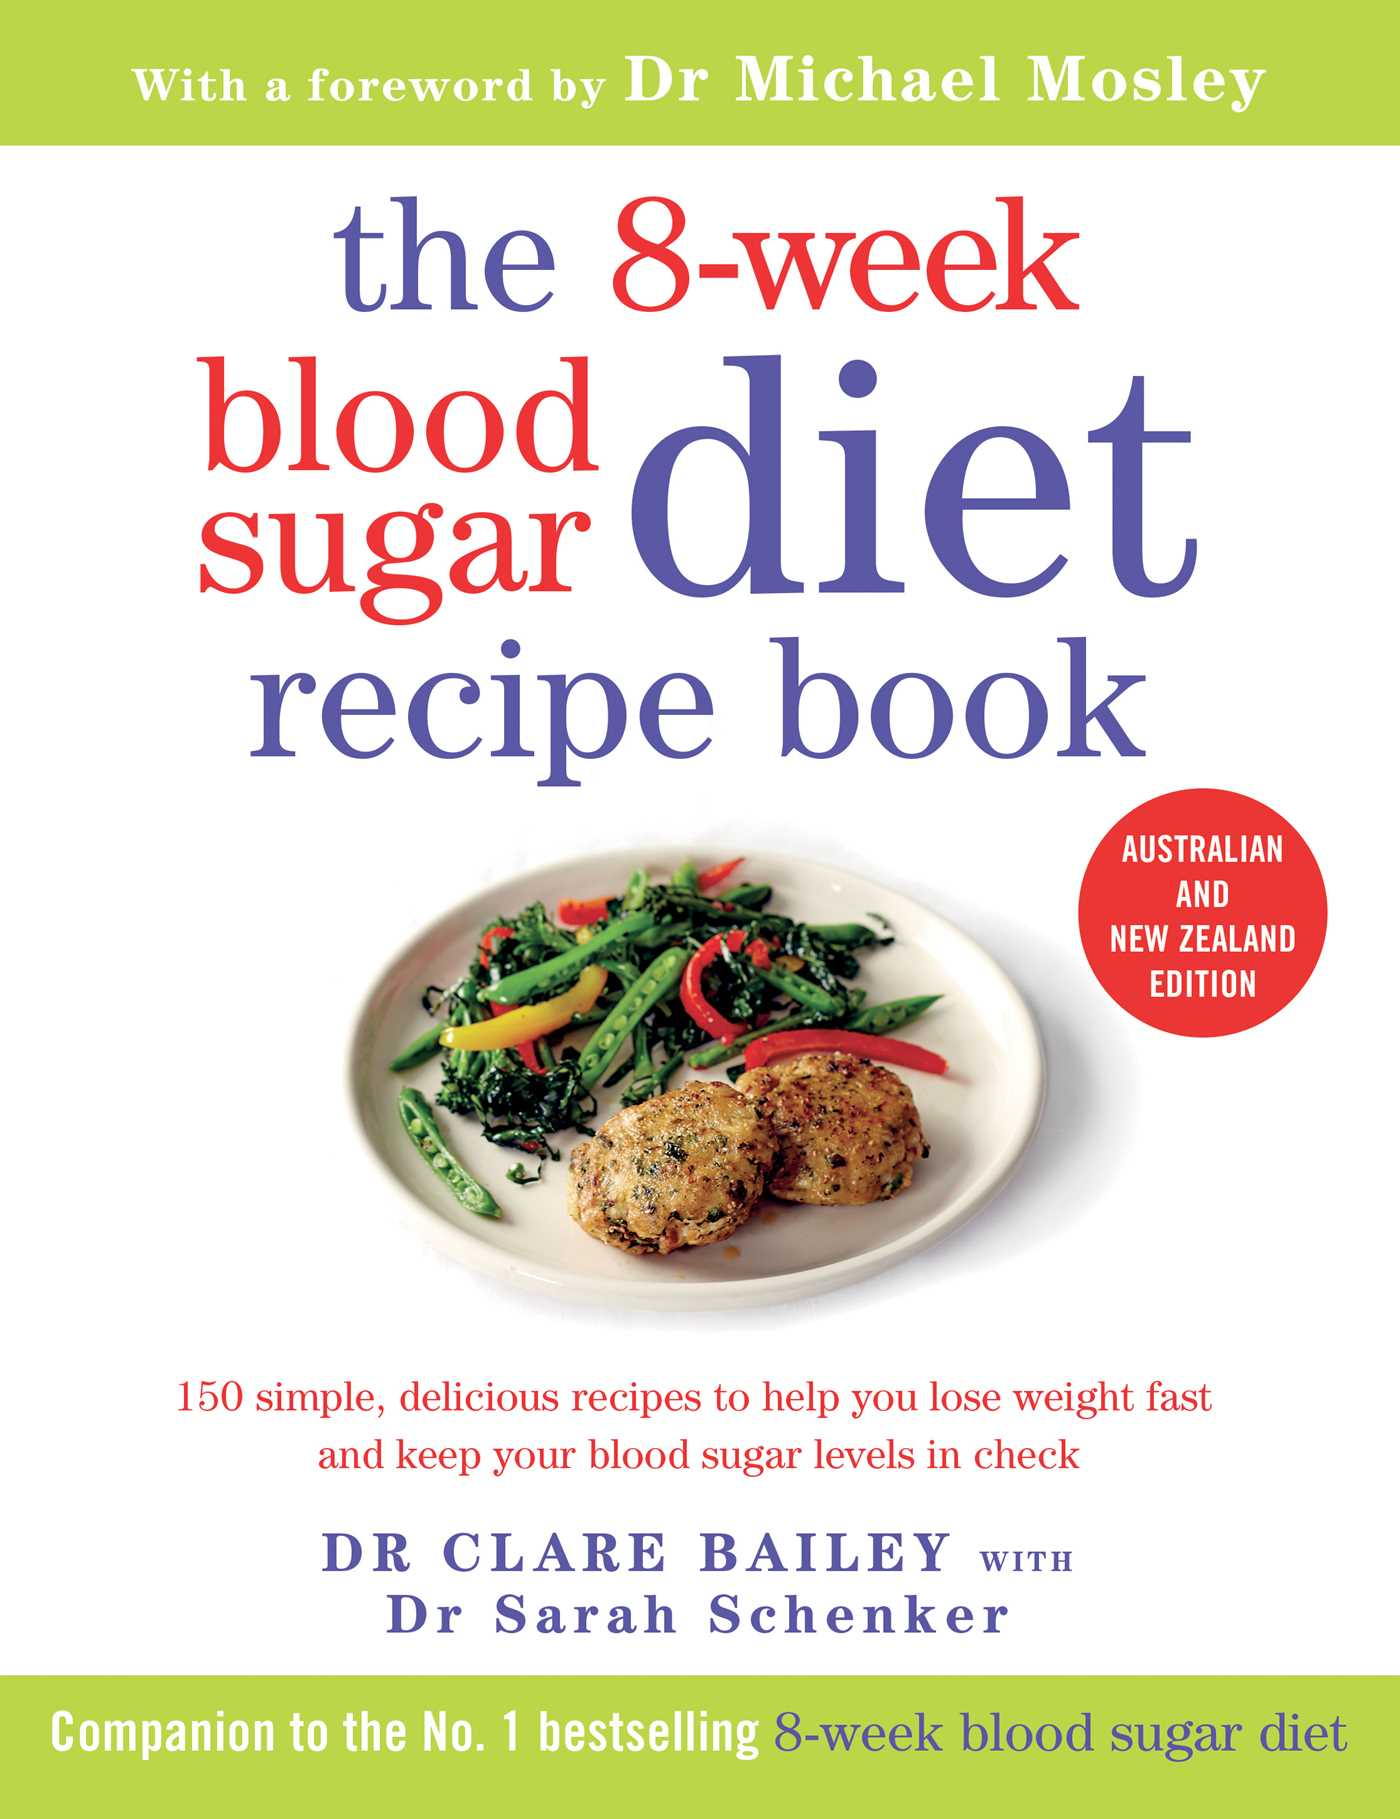 8 week blood sugar diet recipe book book by dr clare bailey dr book cover image jpg 8 week blood sugar diet recipe book forumfinder Gallery